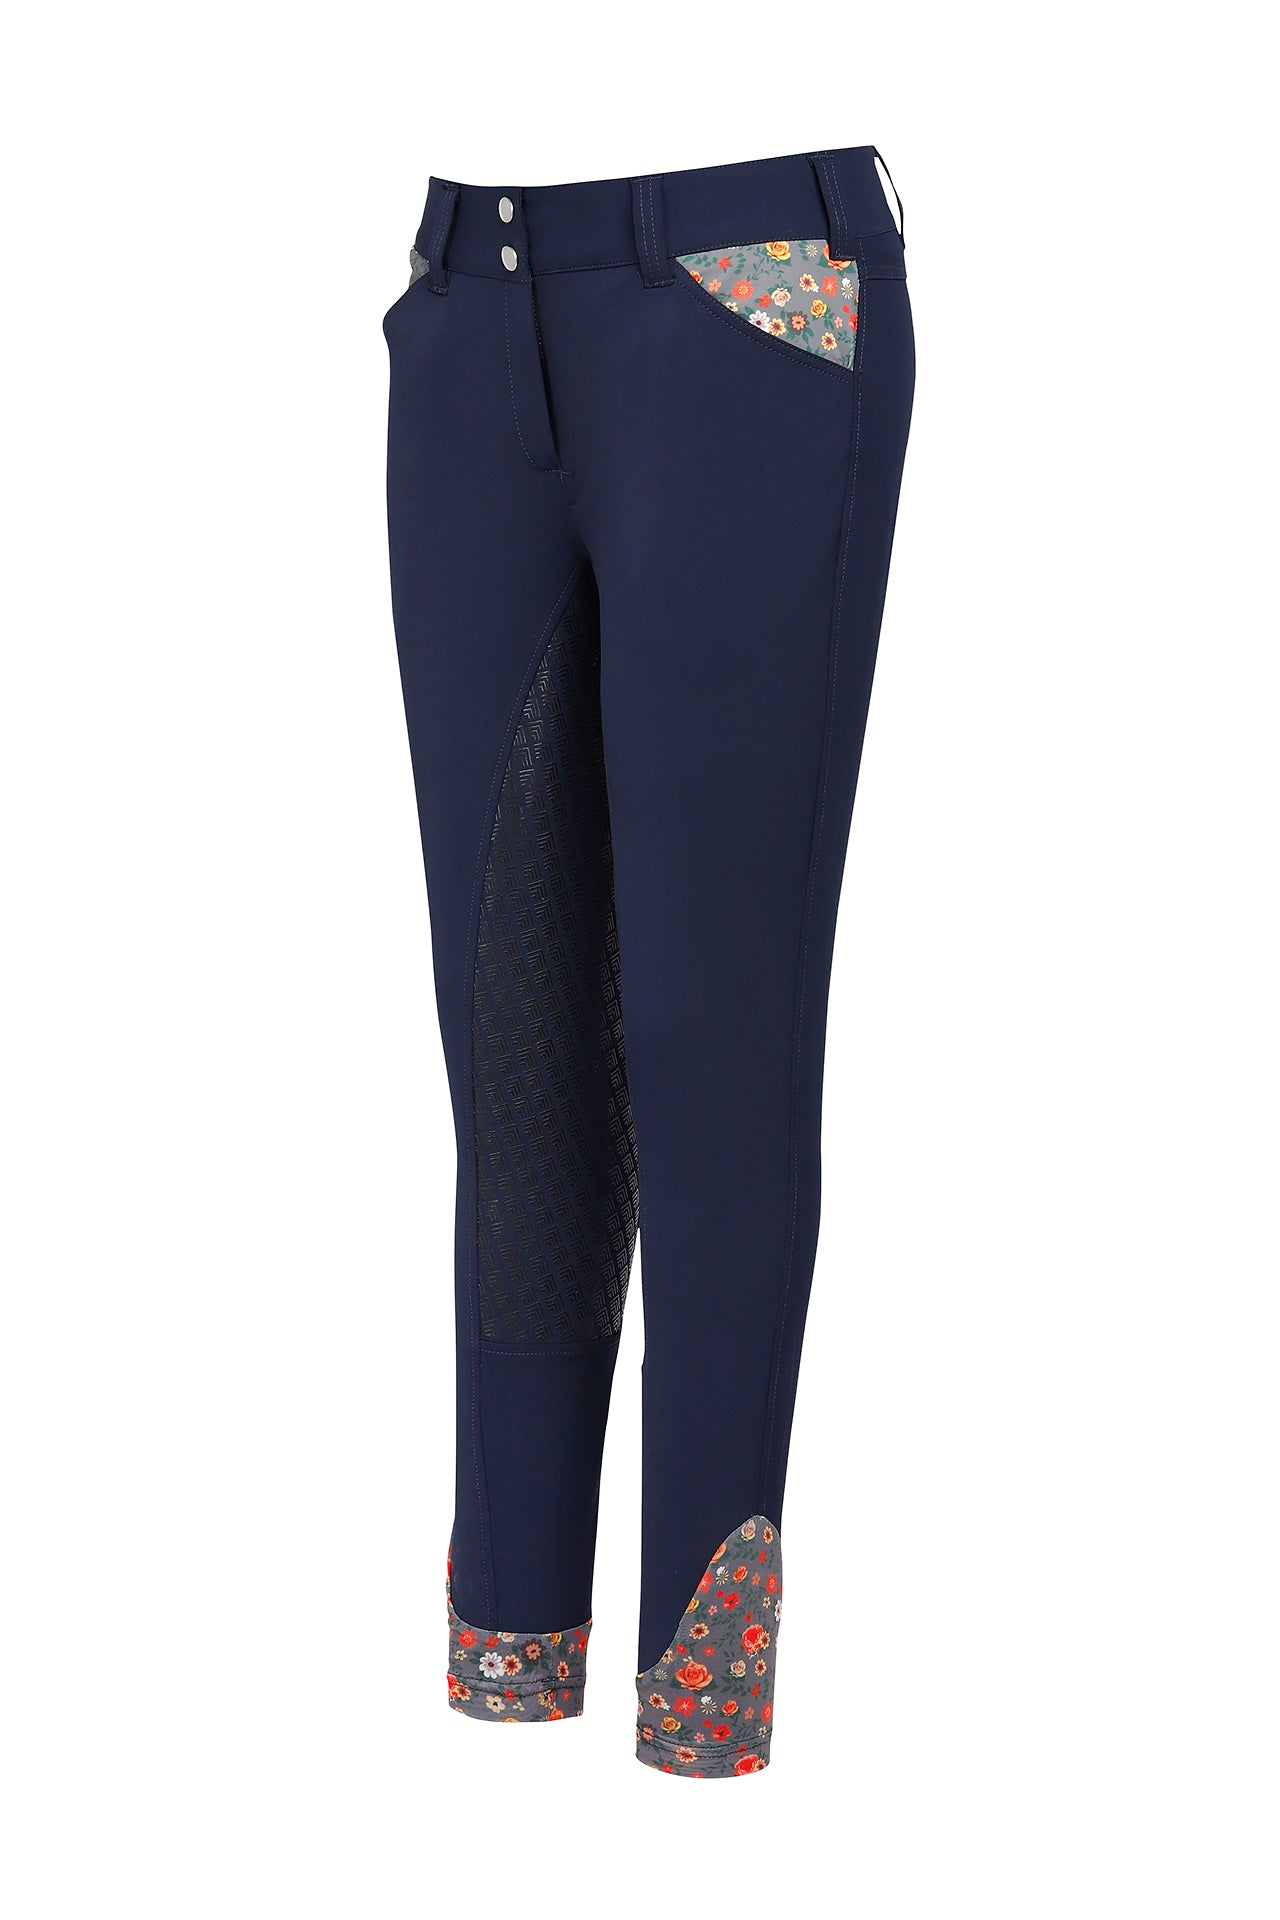 Ecorider By TuffRider Ladies Acadia Full Seat Breeches - TuffRider - Breeches.com